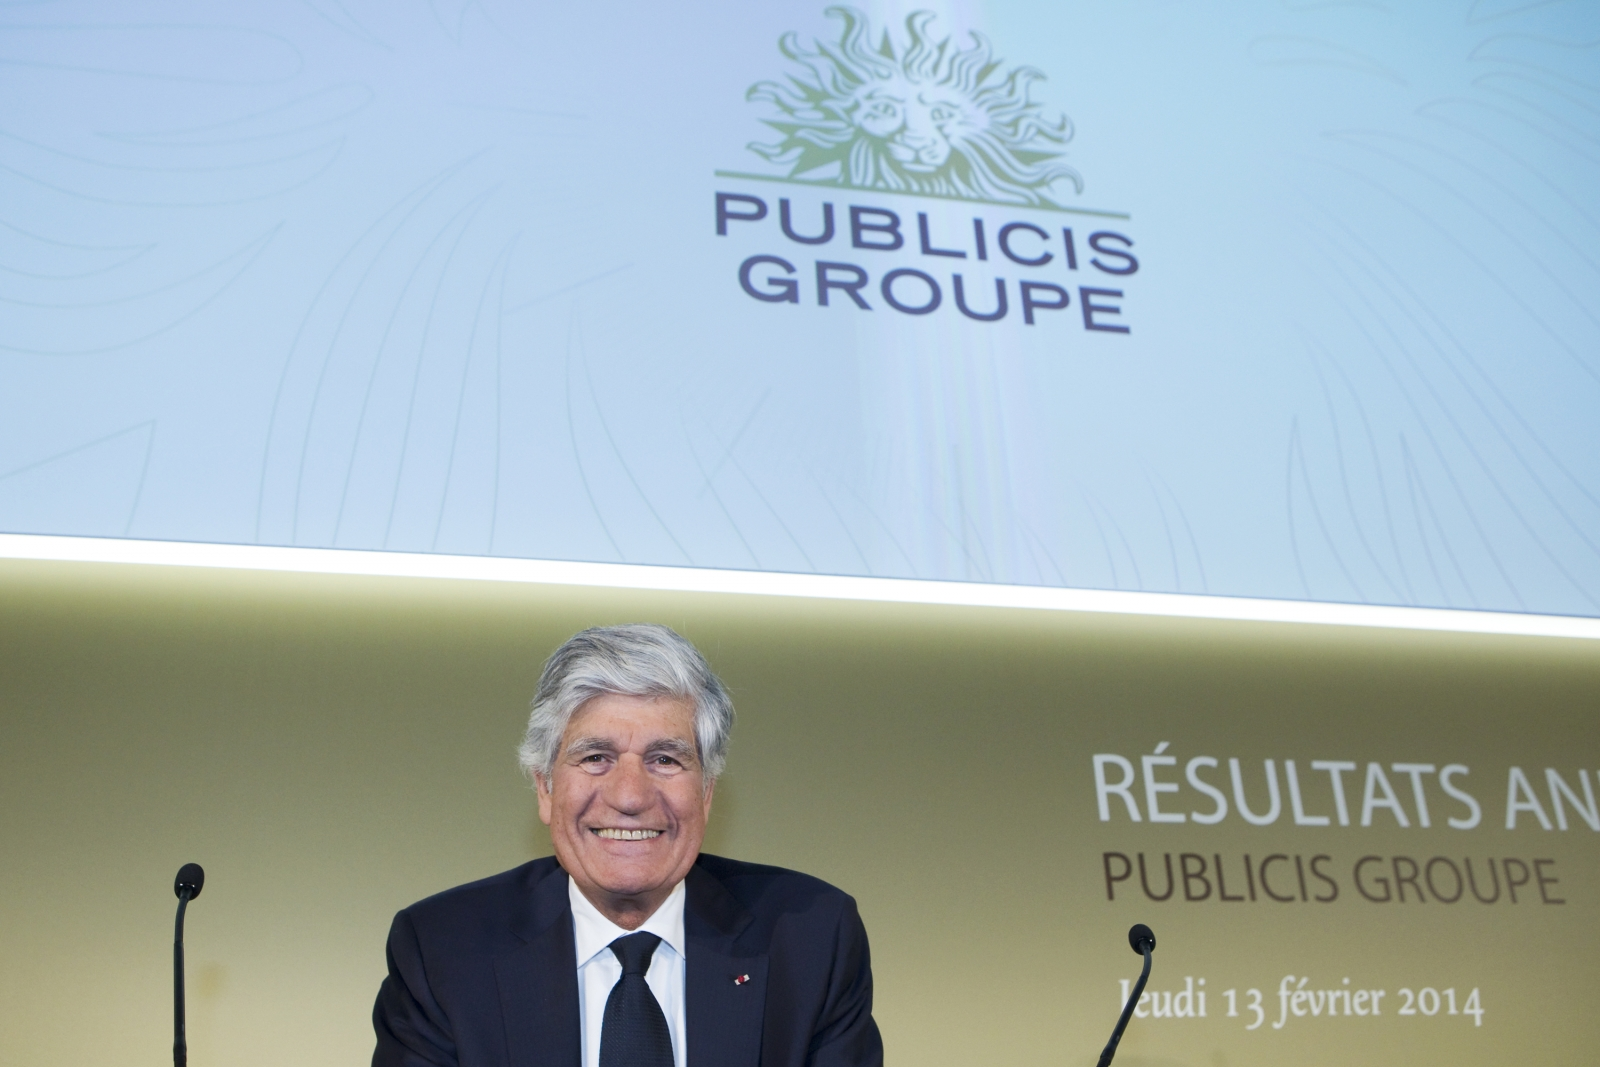 Maurice Levy, Chairman and Chief Executive Officer of Publicis Groupe